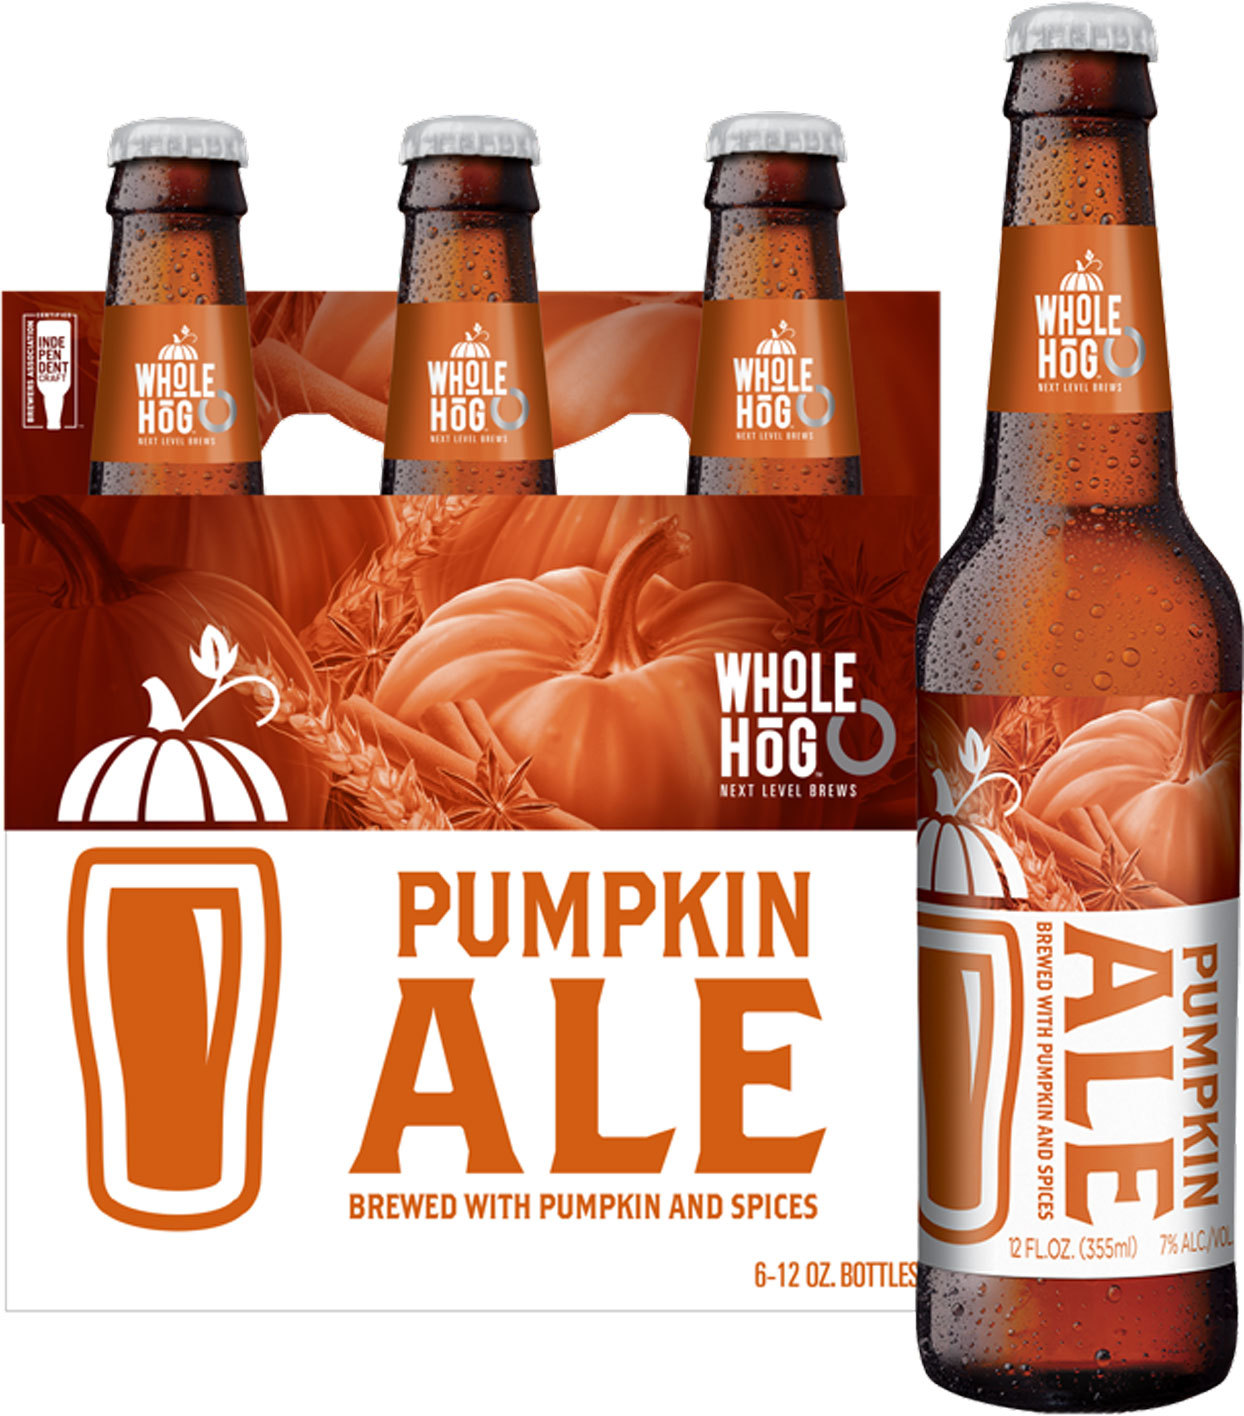 Whole Hog Pumpkin Ale in glass bottes - 6 pack